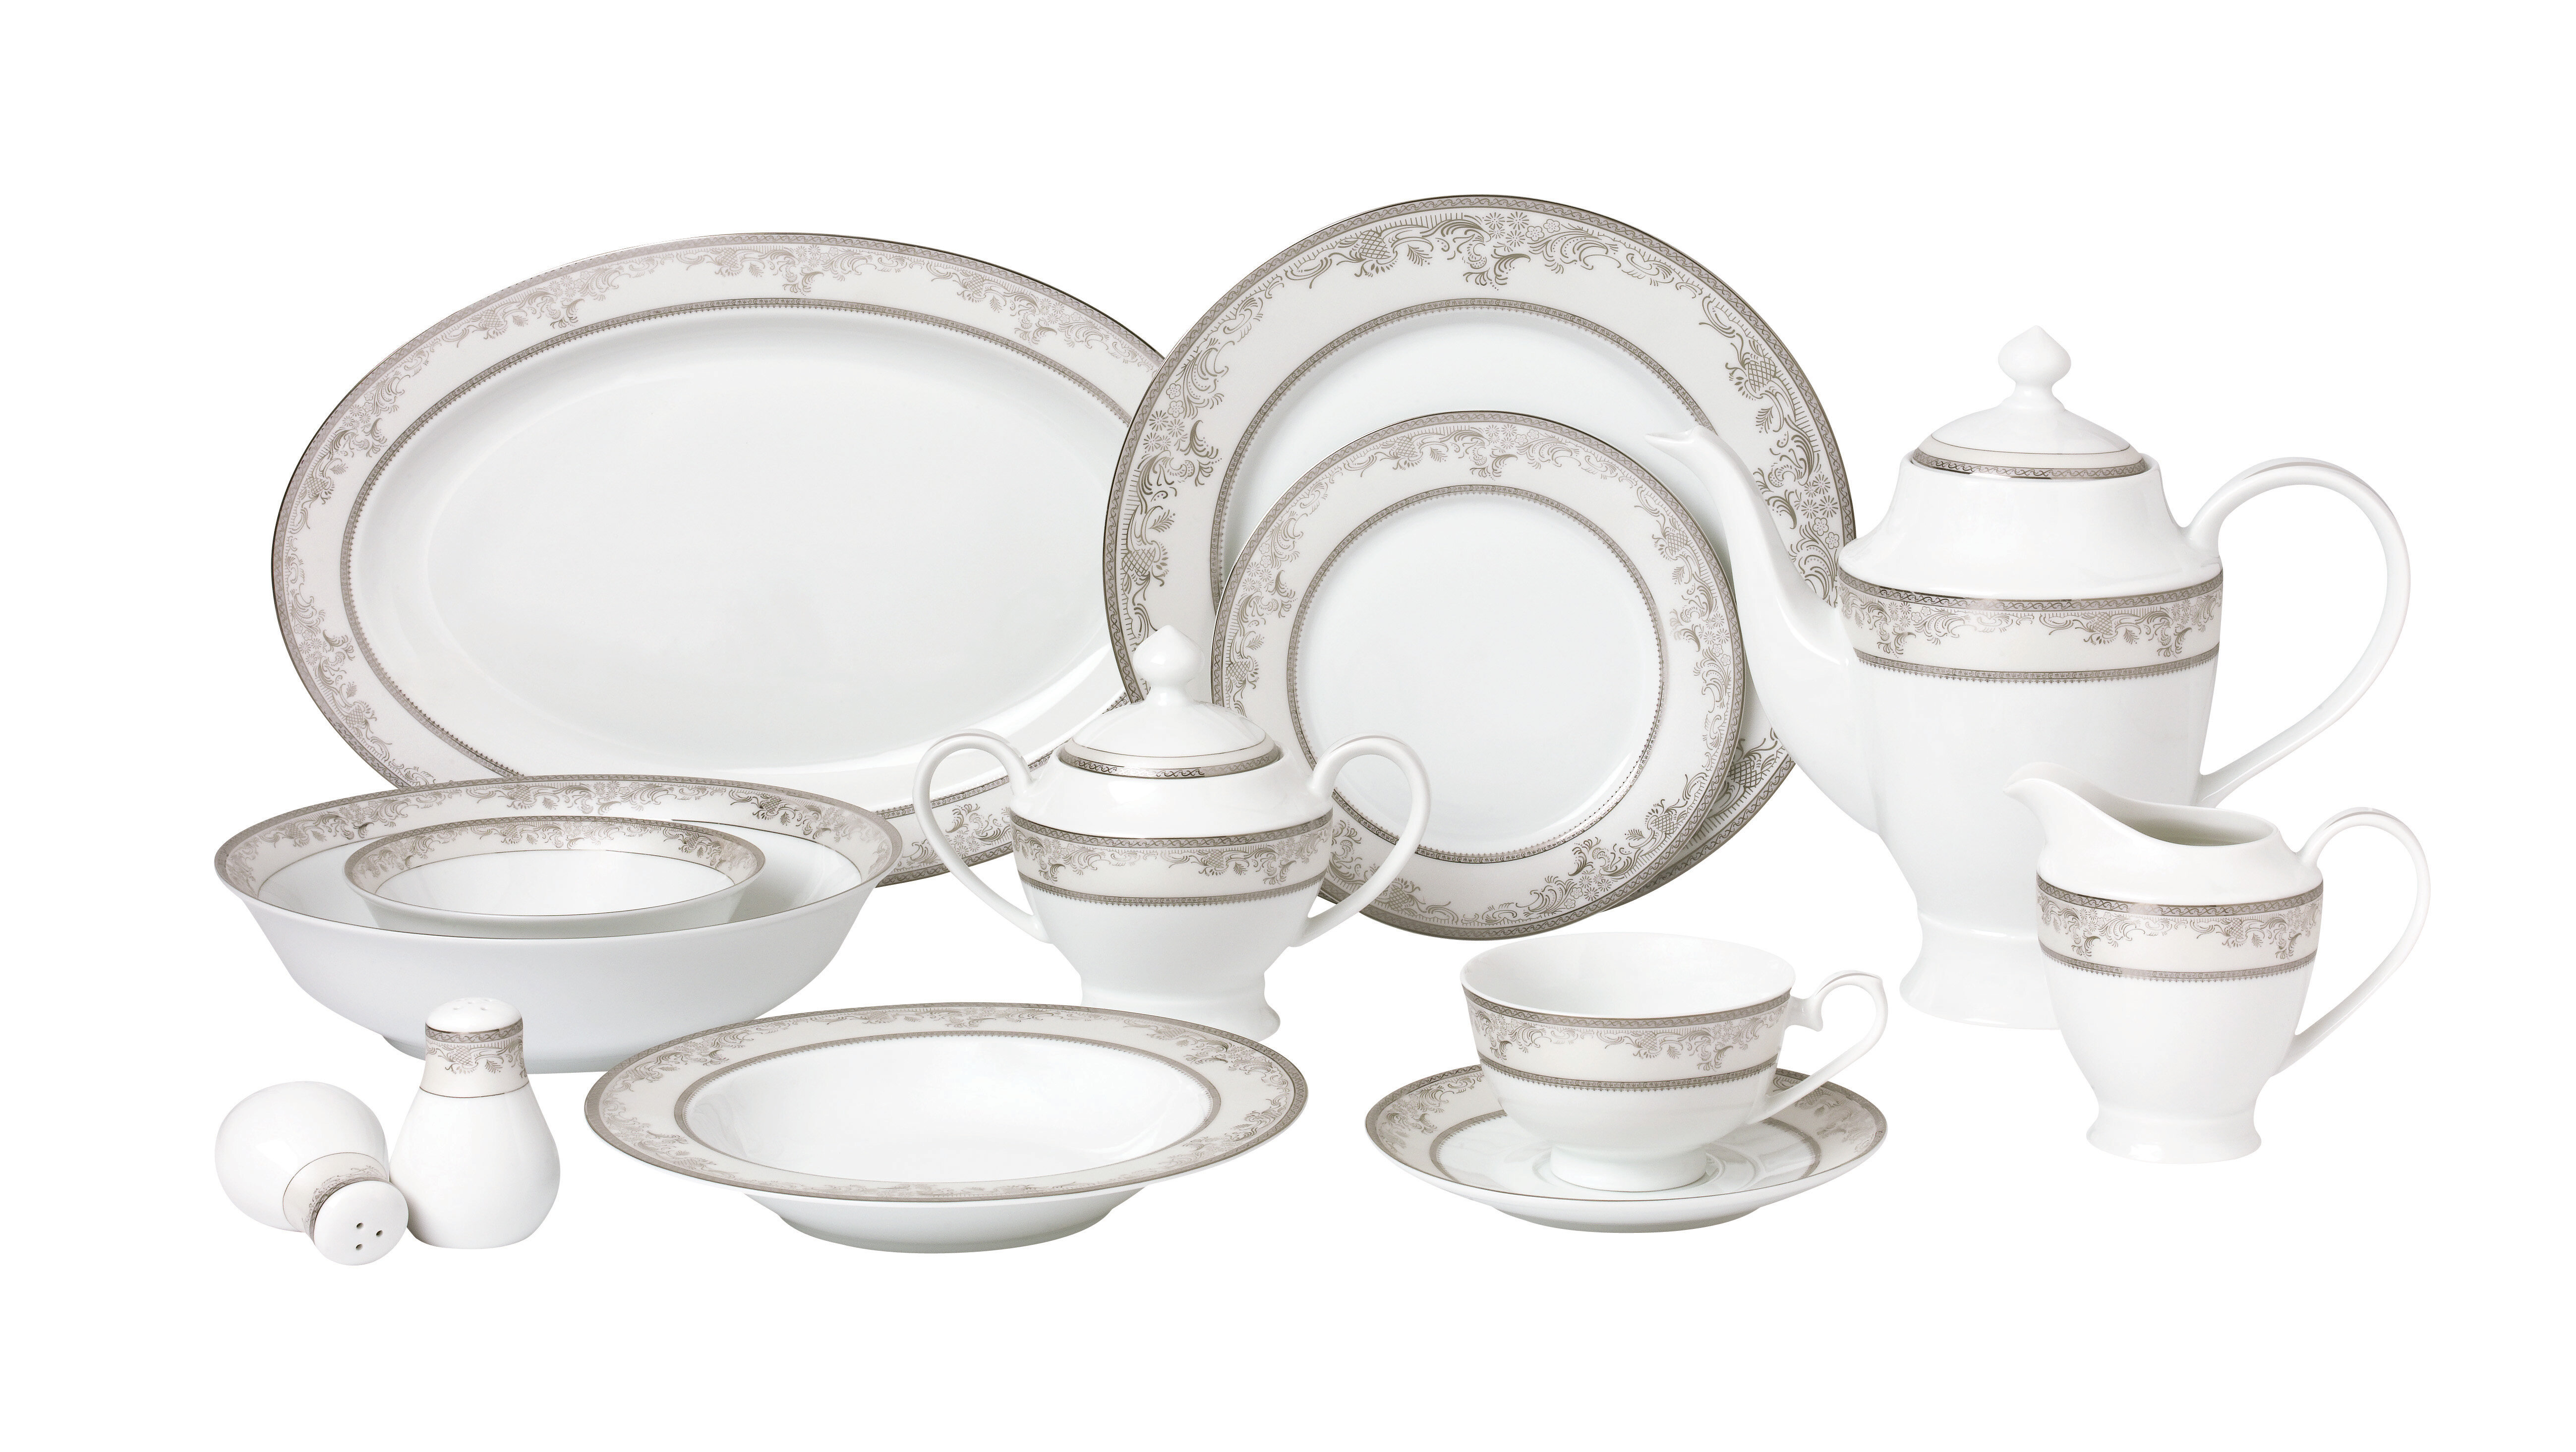 Lorren Home Trends La Luna Bone China 57 Piece Dinnerware Set Service for 8 u0026 Reviews | Wayfair  sc 1 st  Wayfair & Lorren Home Trends La Luna Bone China 57 Piece Dinnerware Set ...